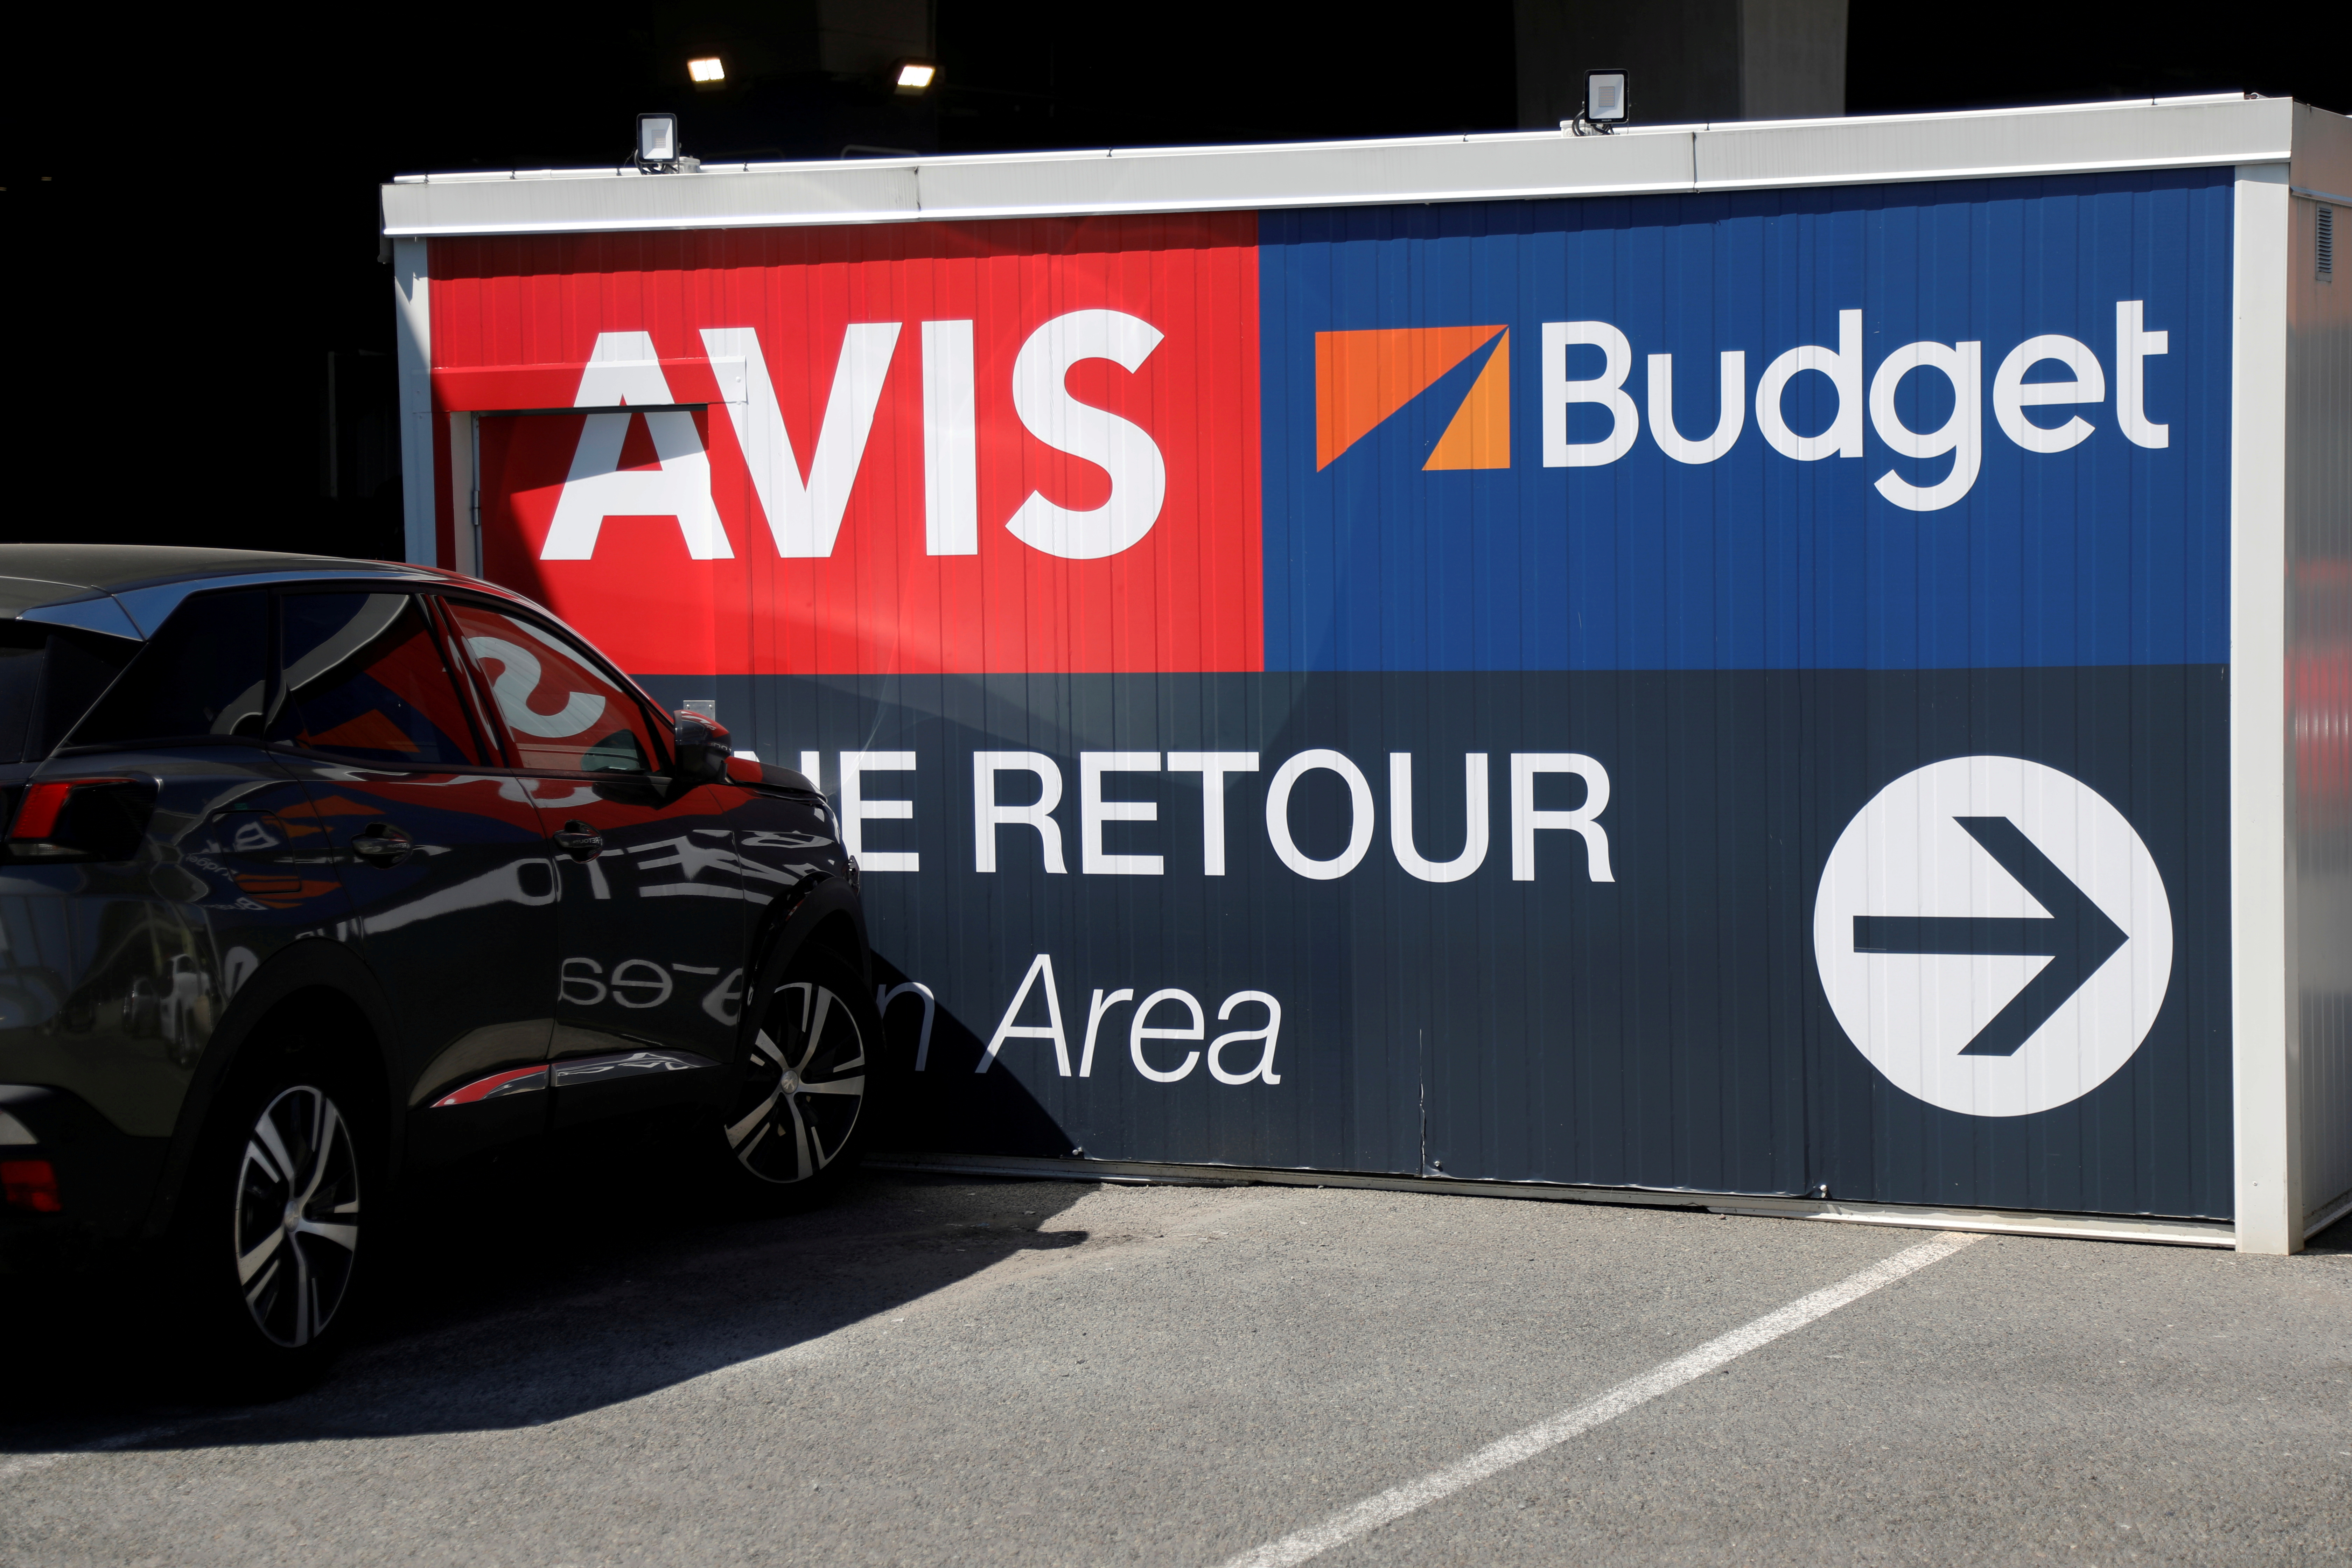 Logos of car rental companies Avis and Budget are seen outside Paris Charles de Gaulle airport in Roissy-en-France during the outbreak of the coronavirus disease (COVID-19) in France May 19, 2020.  REUTERS/Charles Platiau